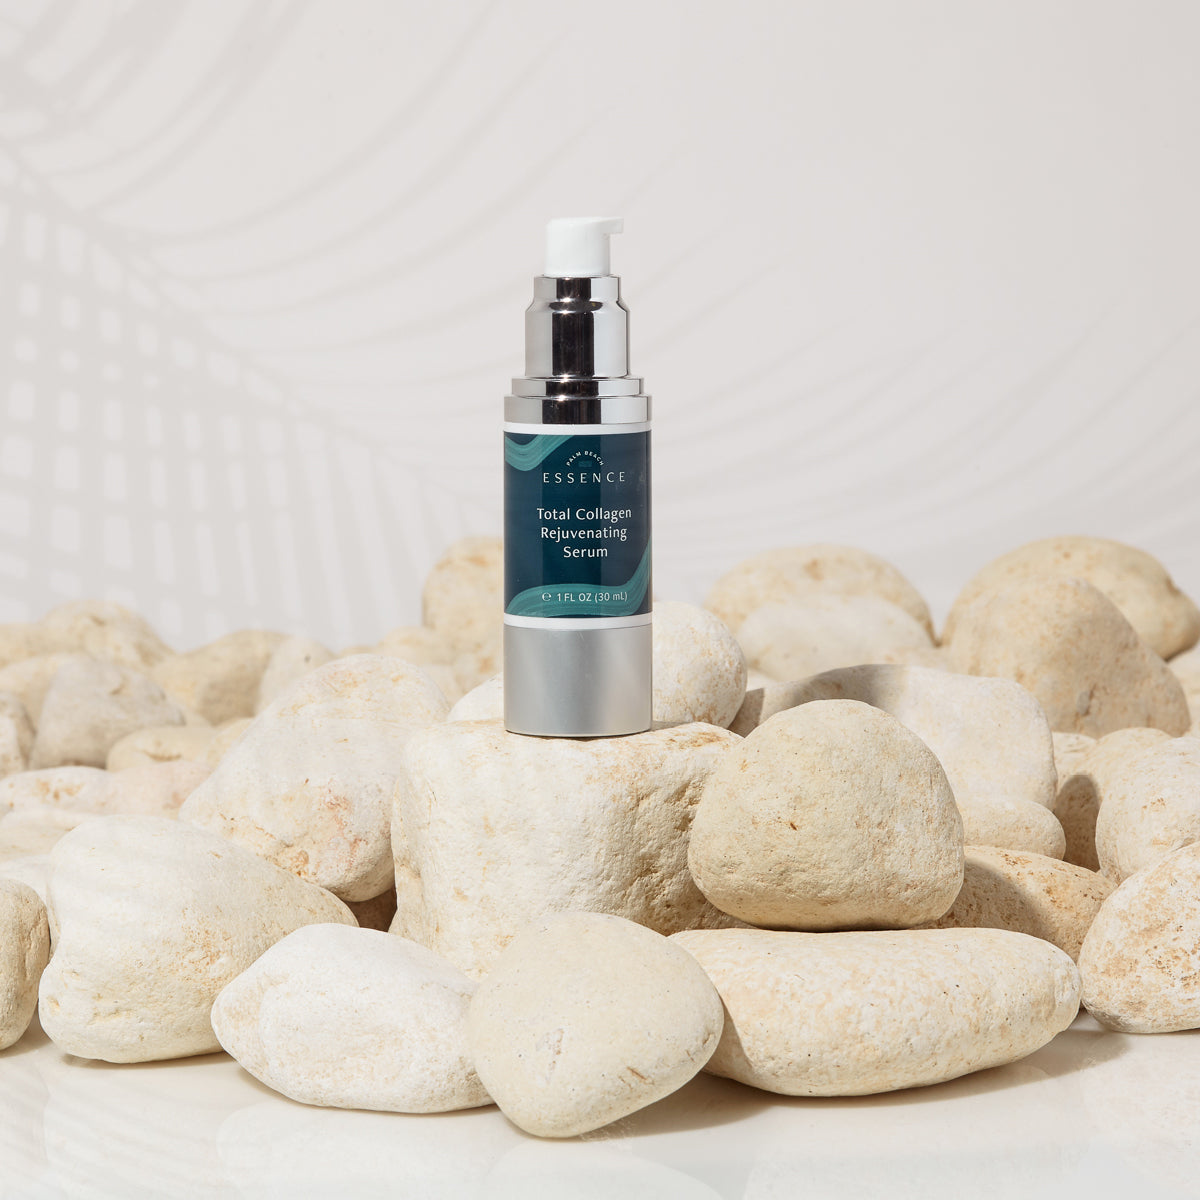 Total Collagen Rejuvenating Serum - Plump, smooth, and firm your skin with this collagen-boosting serum.